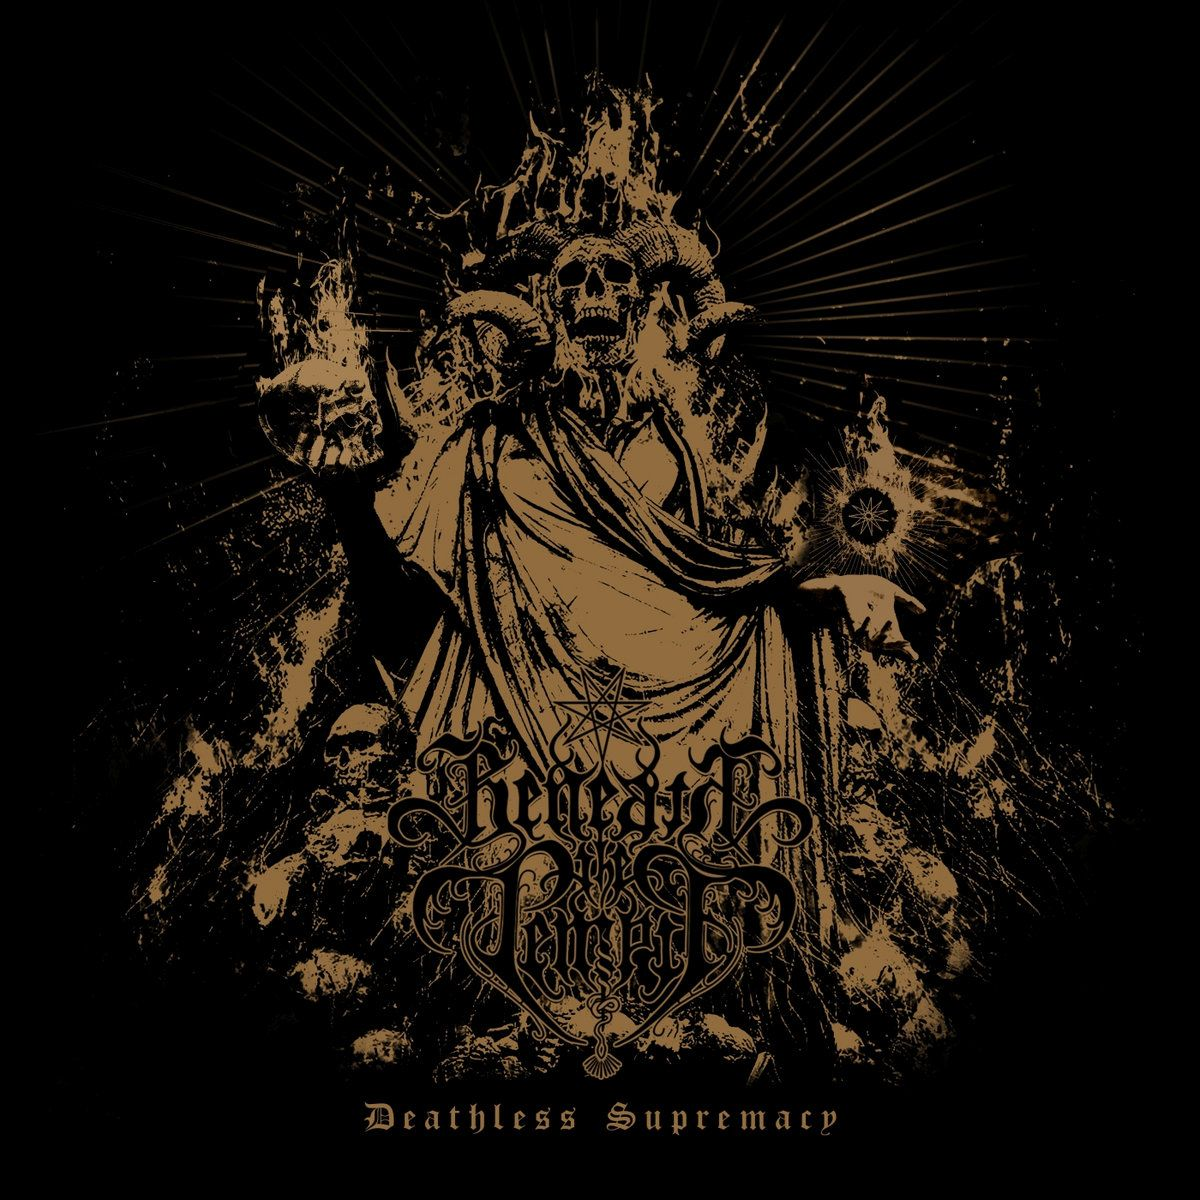 Beneath the Temple - Deathless Supremacy